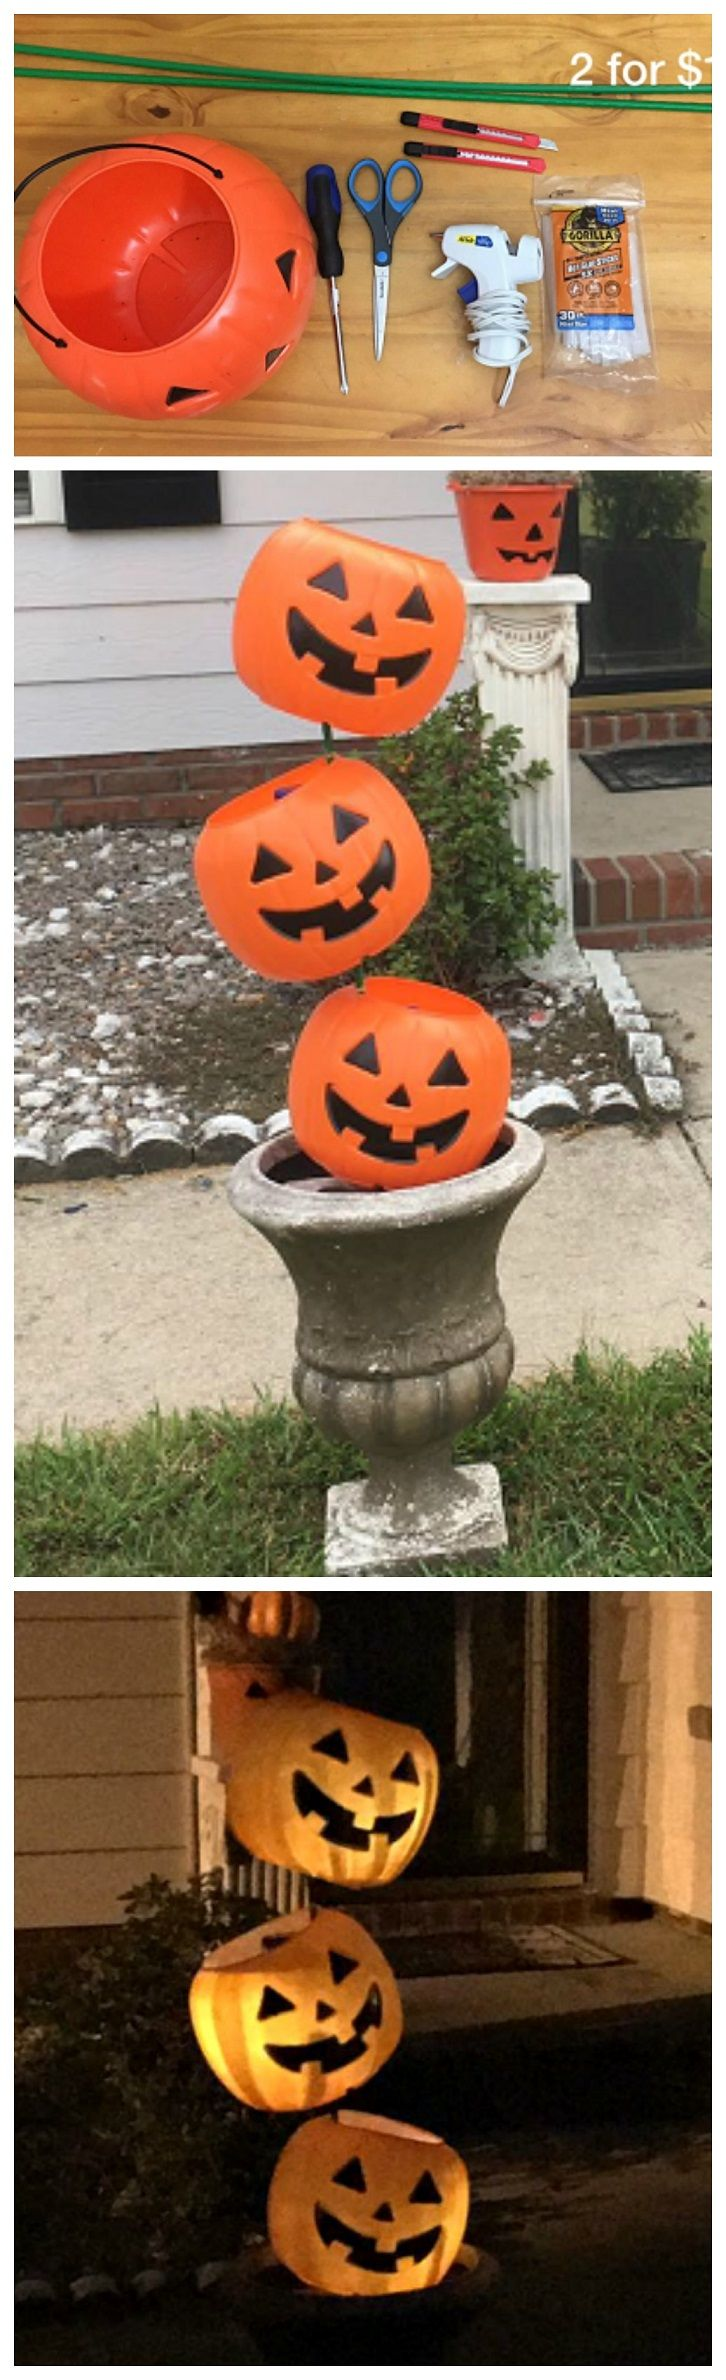 make a plastic pumpkin pail tipsy decoration for halloween such a cheap and easy craft - Cheap Halloween Party Decorations